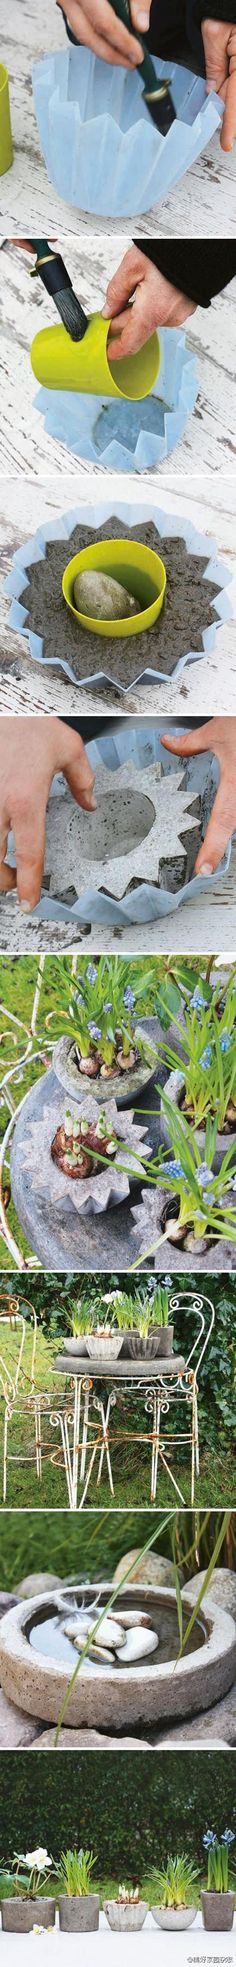 Dump A Day Fun Garden Ideas